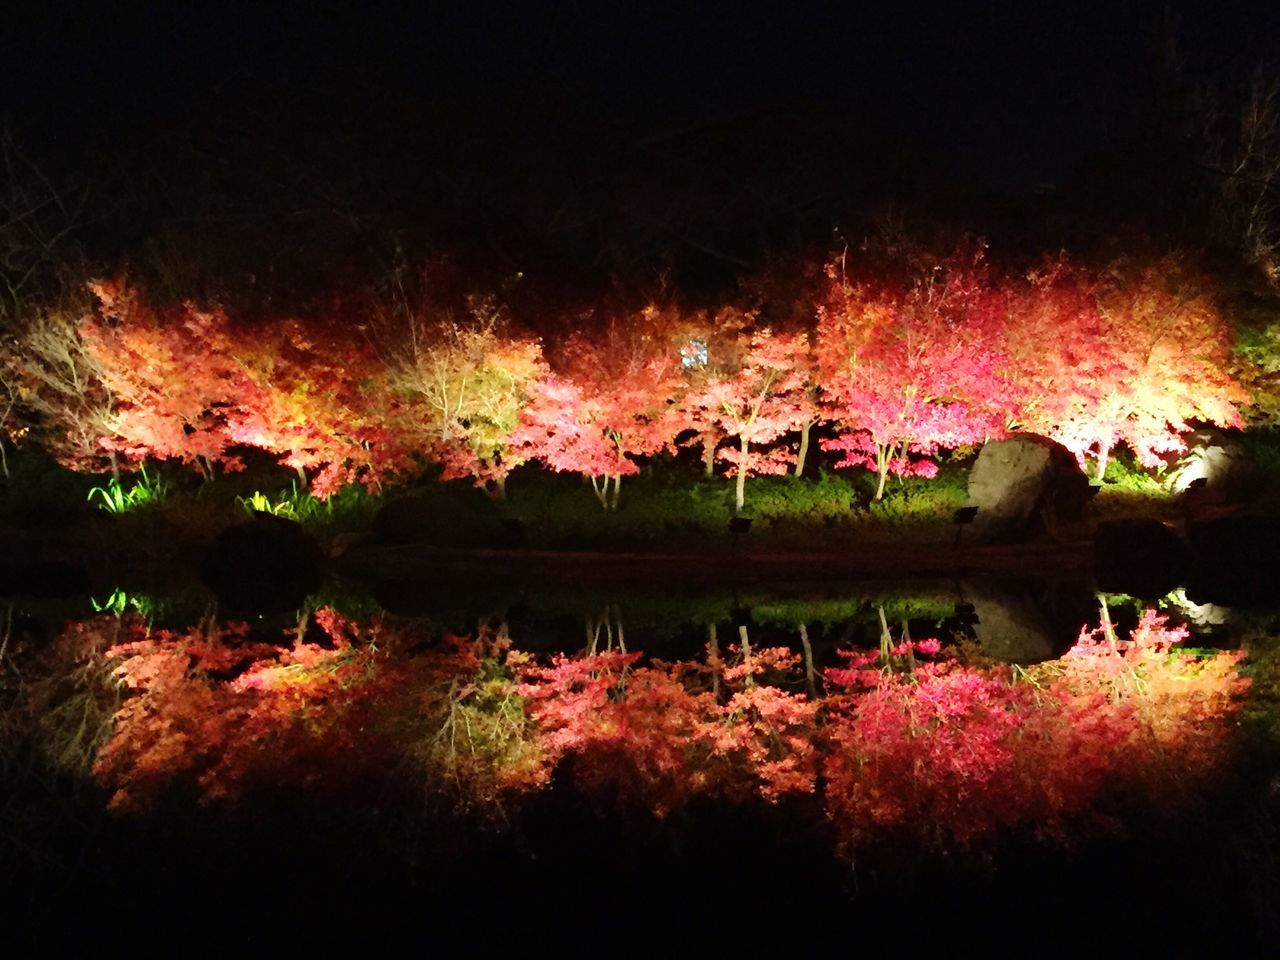 reflection, lake, water, night, nature, tree, outdoors, beauty in nature, no people, scenics, growth, illuminated, sky